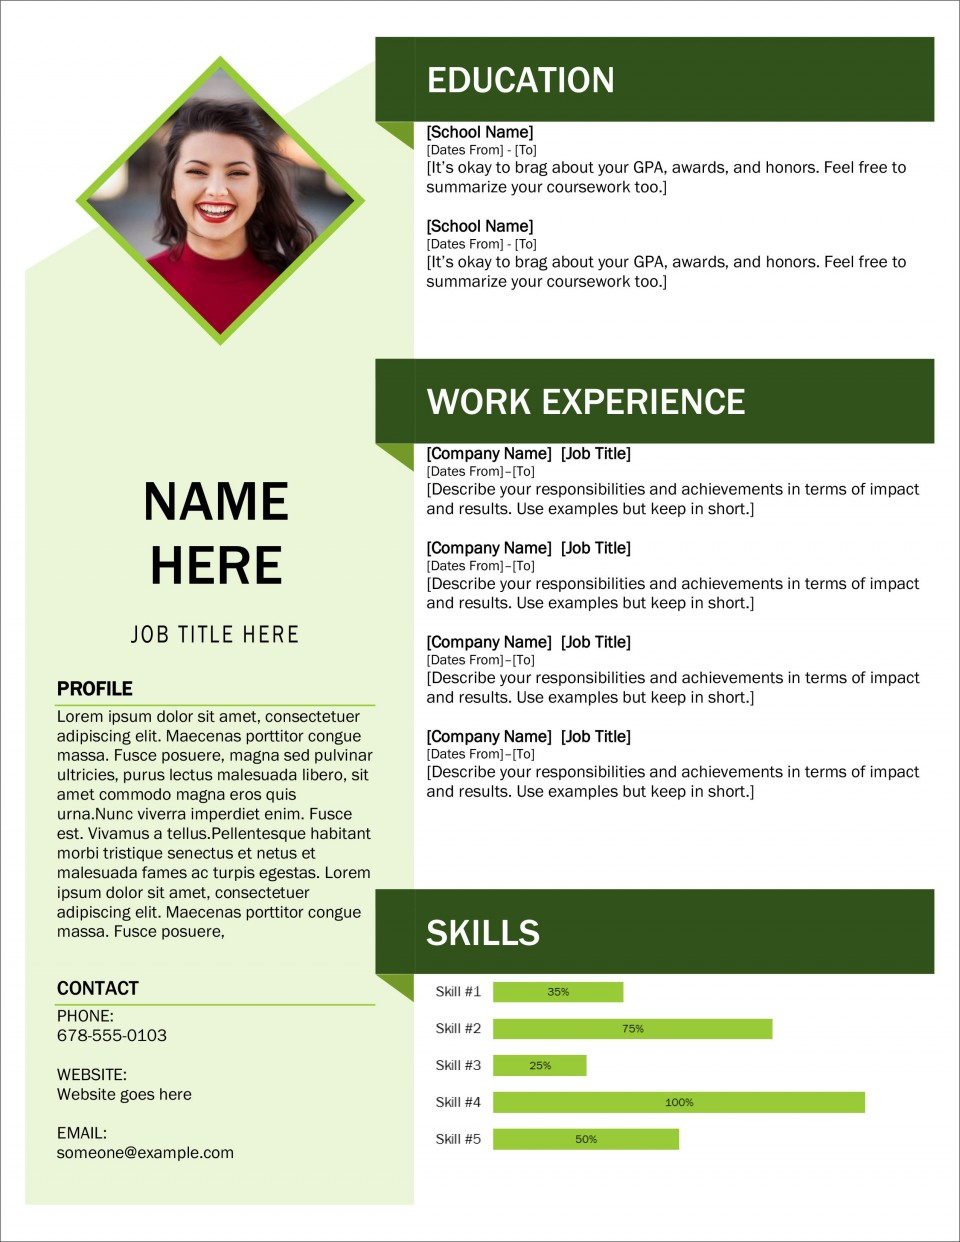 005 Exceptional Download Resume Template Word 2007 High Def 960